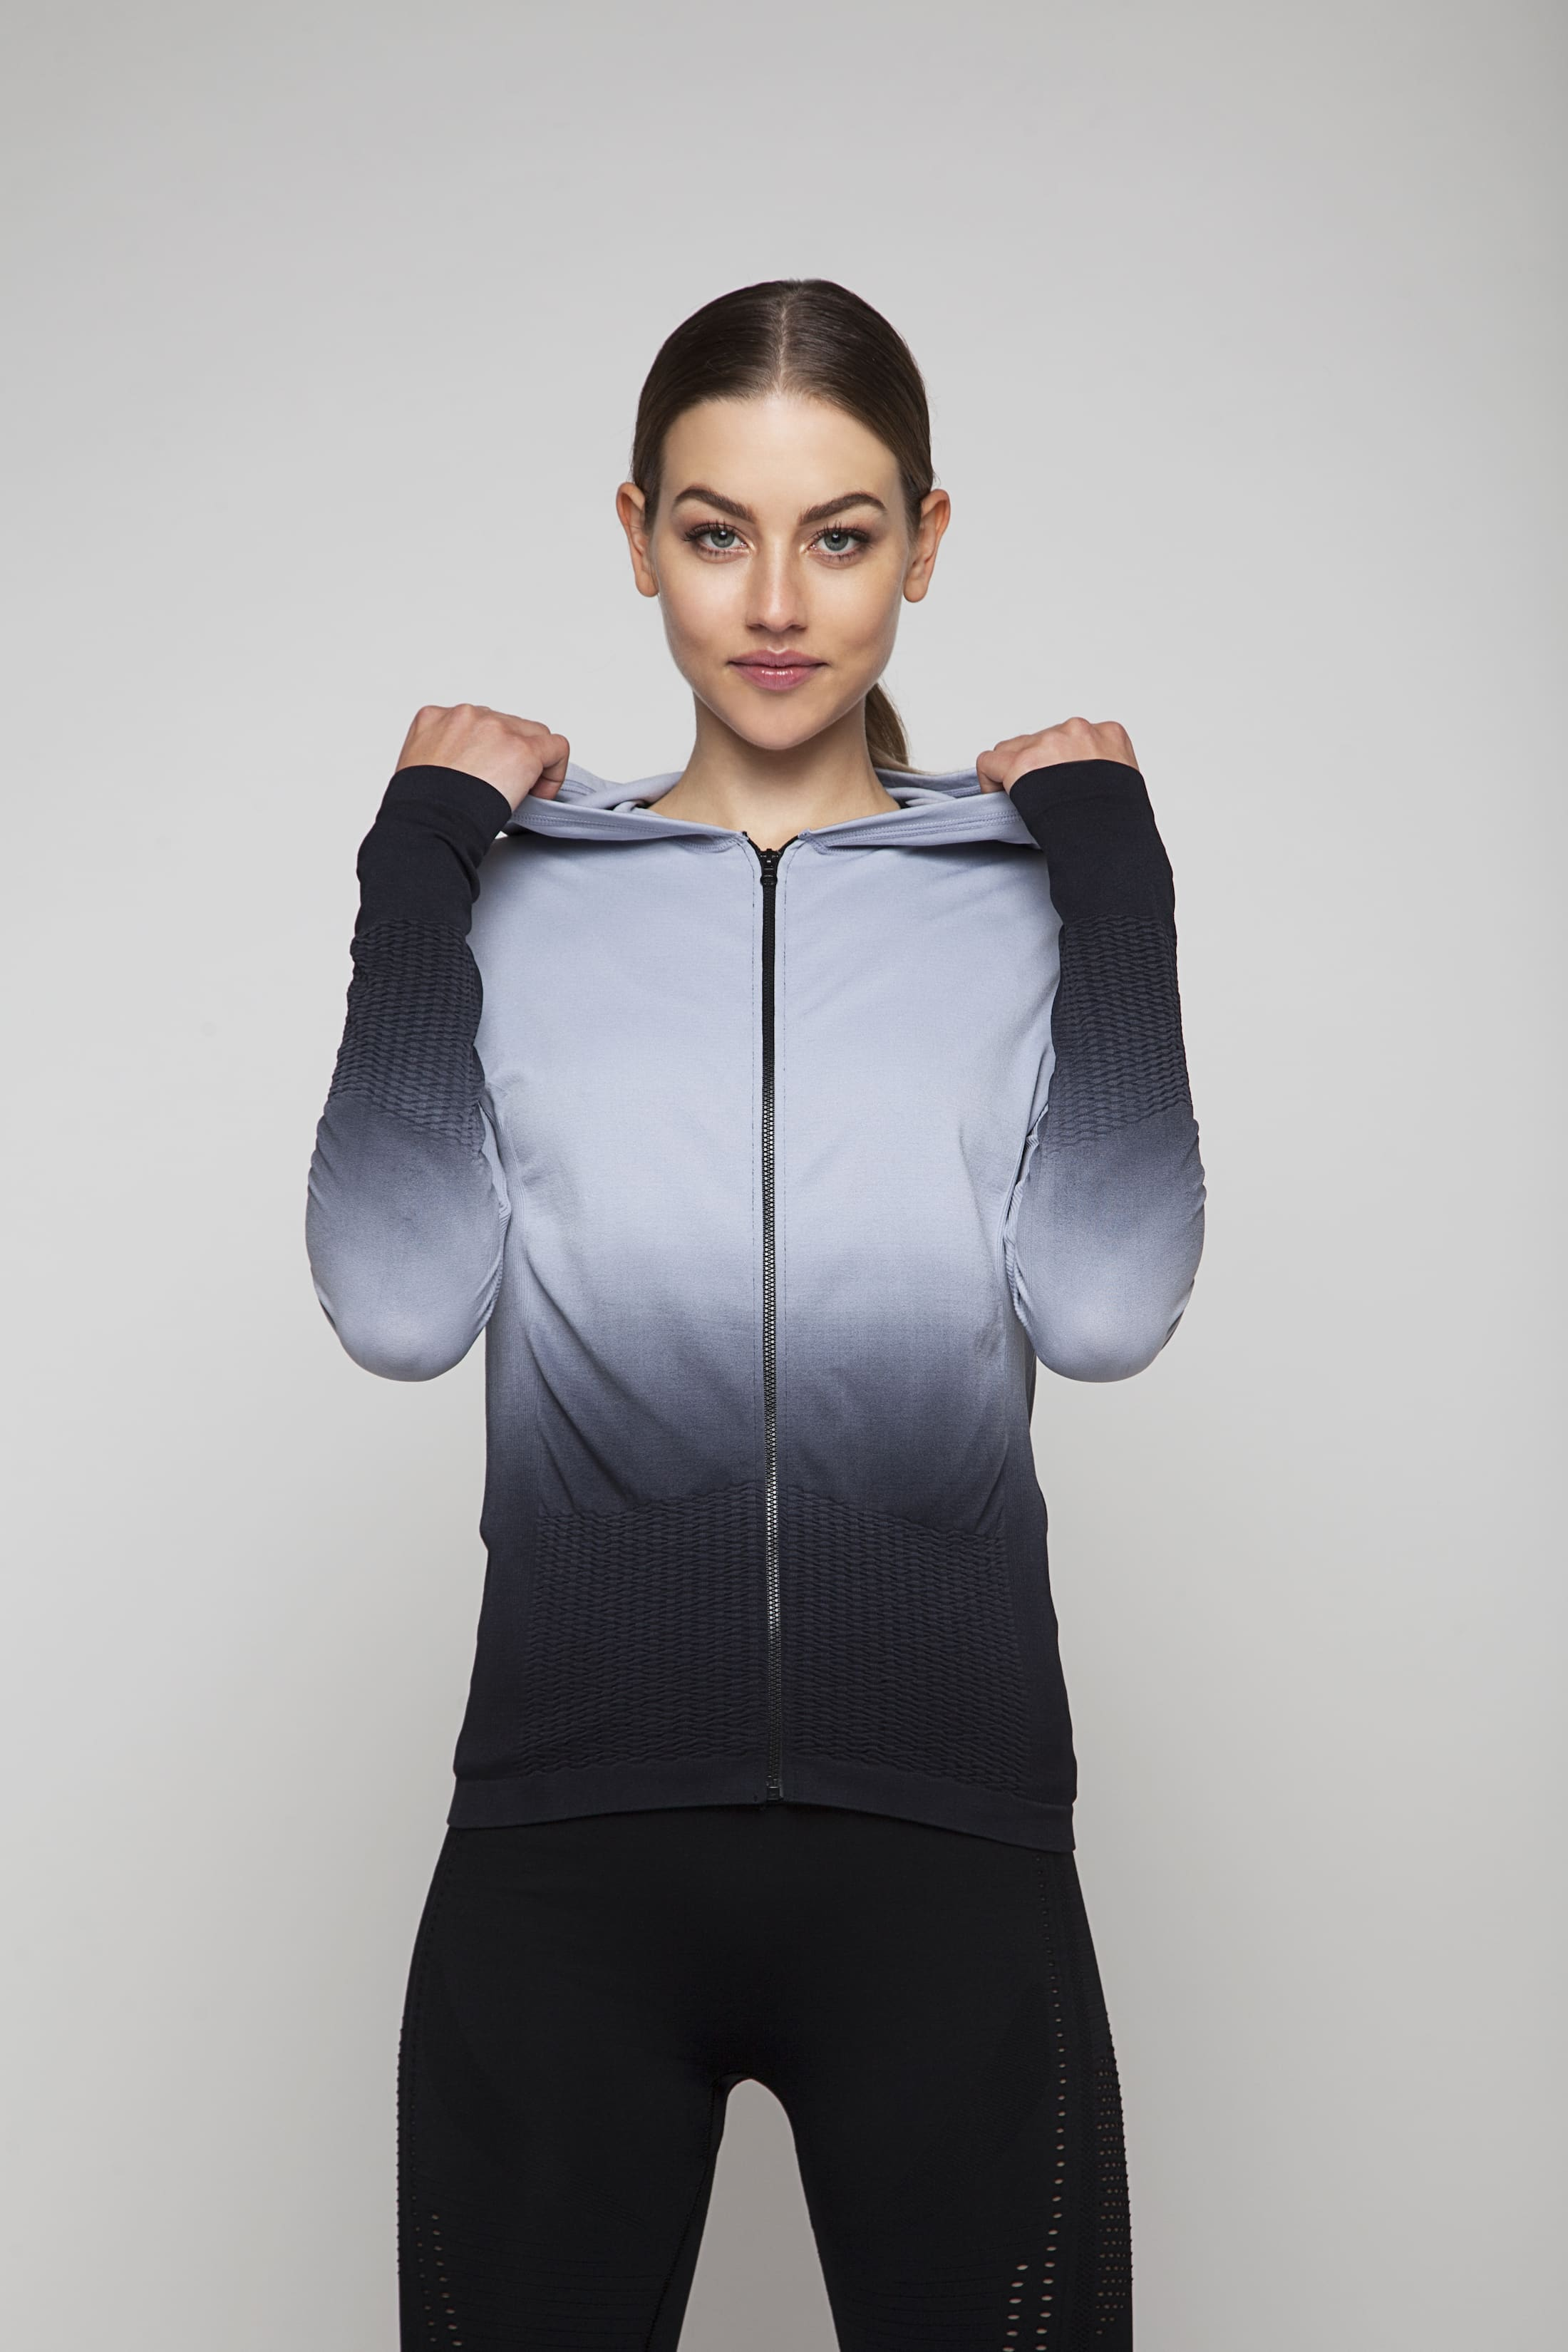 Soft grey training top with zipper